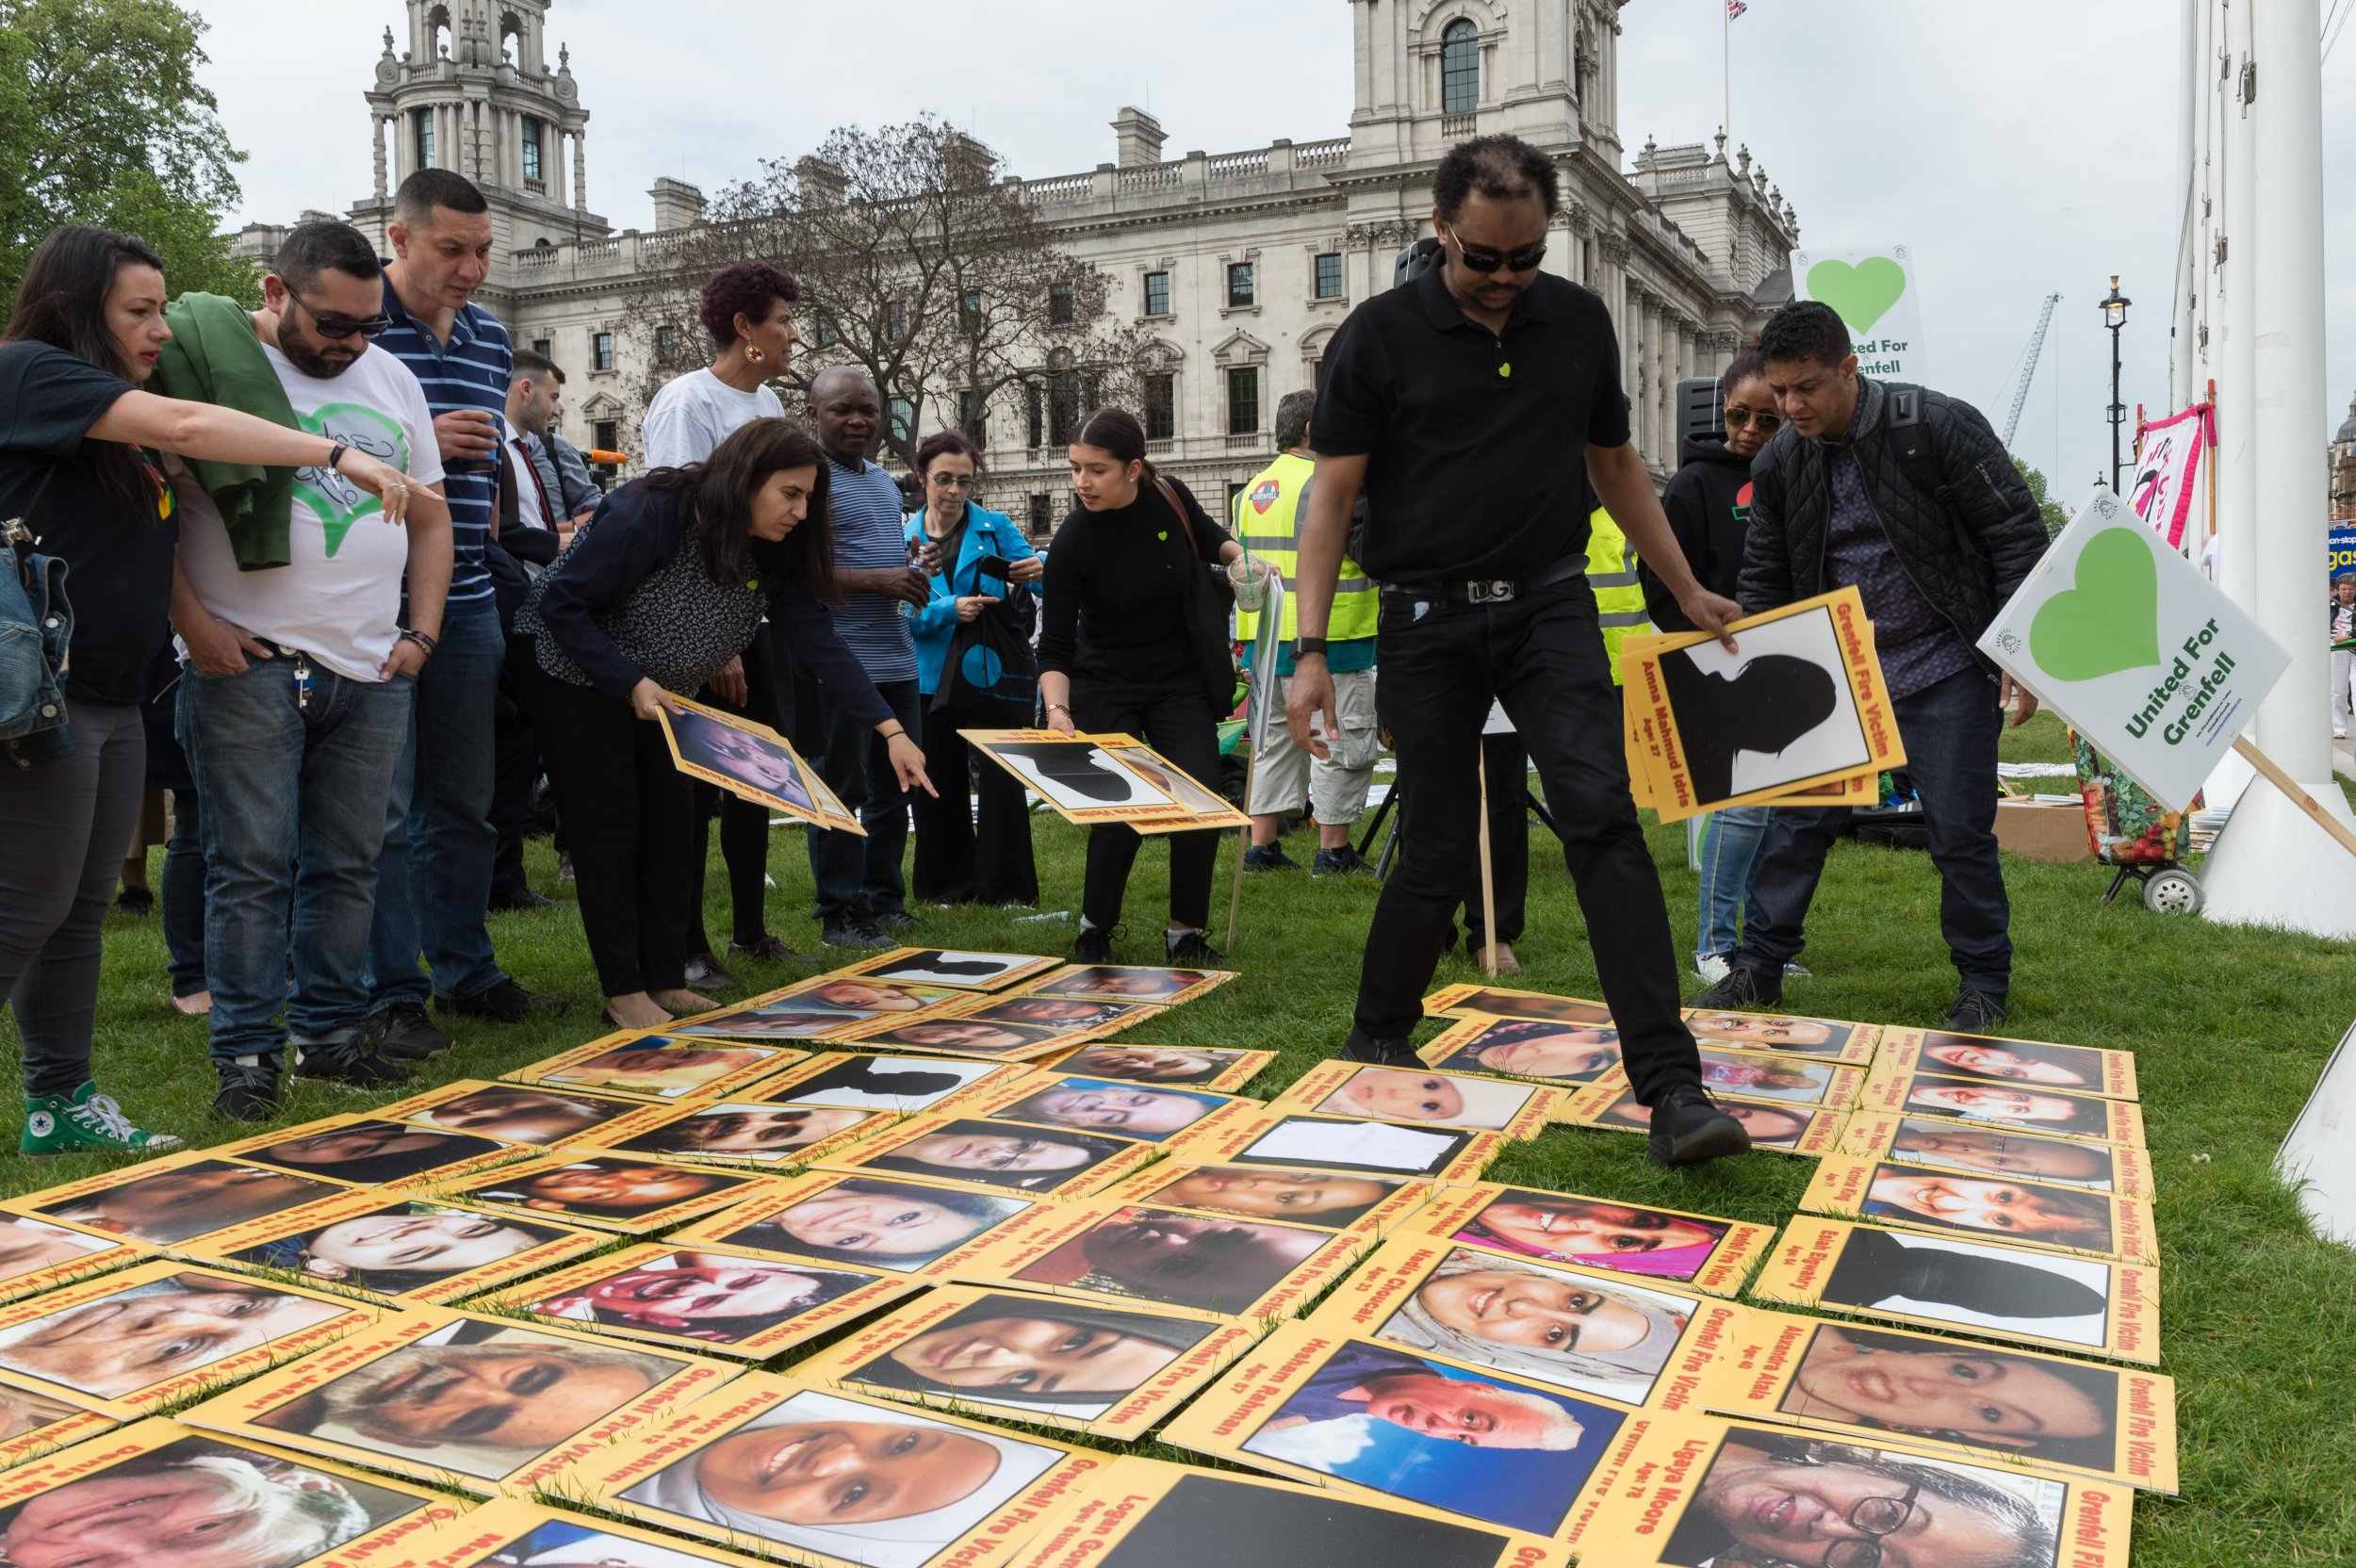 LONDON, UNITED KINGDOM - MAY 14: The Grenfell community of survivors, bereaved families and supporters gather in Parliament Square in central London in a peaceful protest as Members of Parliament debate a petition signed by over 150,000 people asking for appointment of a panel of decision making experts to sit alongside Sir Martin Moore-Bick in the Grenfell Tower Public Inquiry, which is due to commence on 21st May 2018. The protesters demand a panel of experts to be involved to avoid collapse of confidence in an inquiry set up to establish the cause and accountabilities involved in the Grenfell Tower fire on 14th June 2017 in which 71 people died. May 14, 2018 in London, England.PHOTOGRAPH BY Wiktor Szymanowicz / Barcroft Images